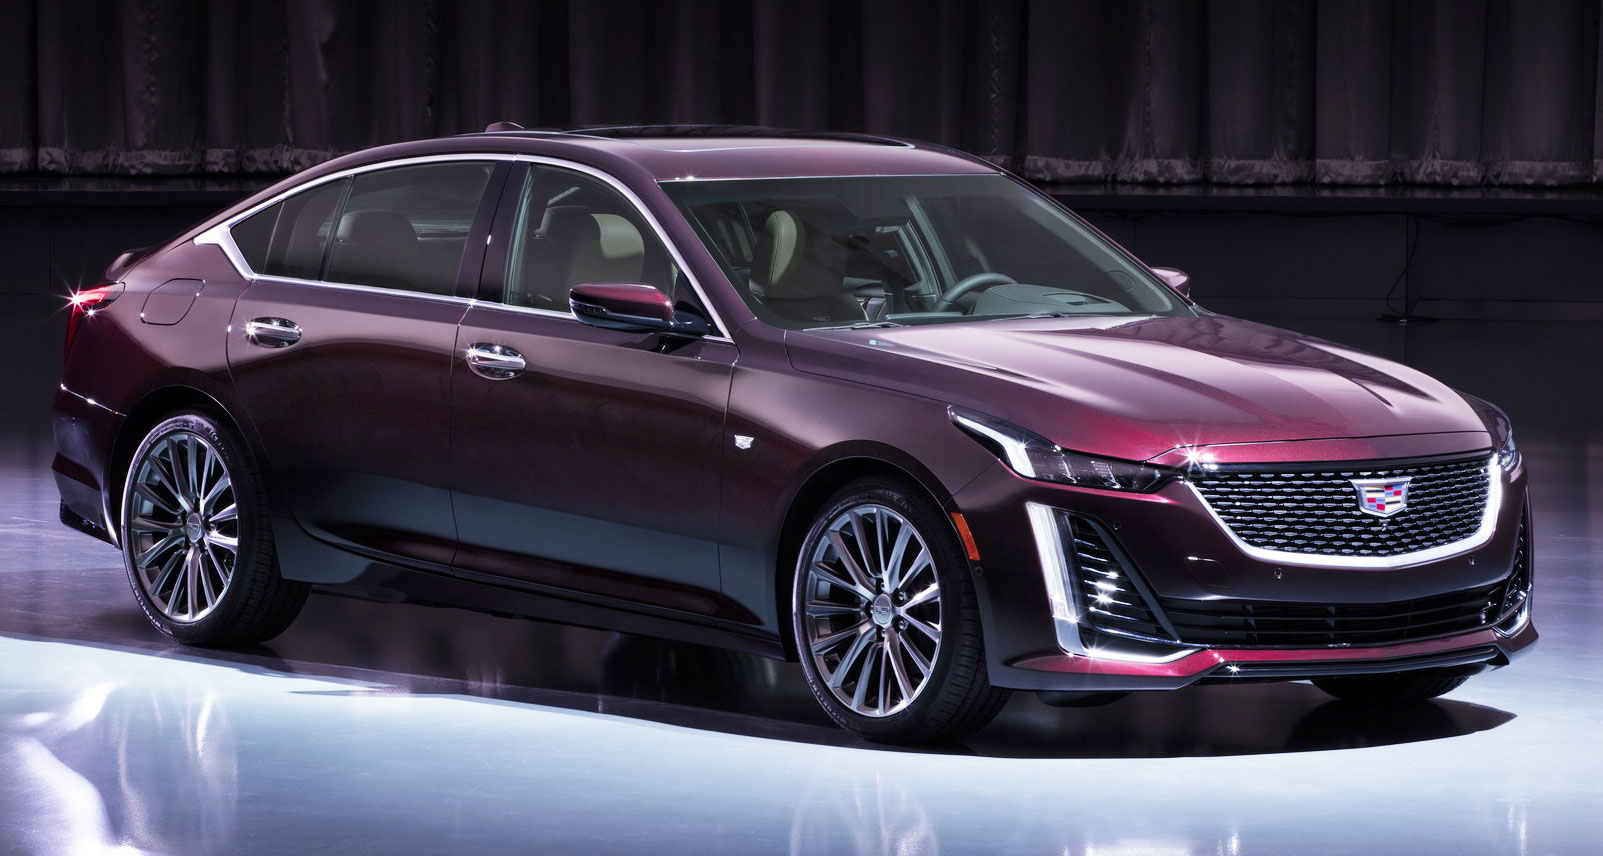 2020 Cadillac CT5 Is A Compact Sports Sedan The Size Of A ...